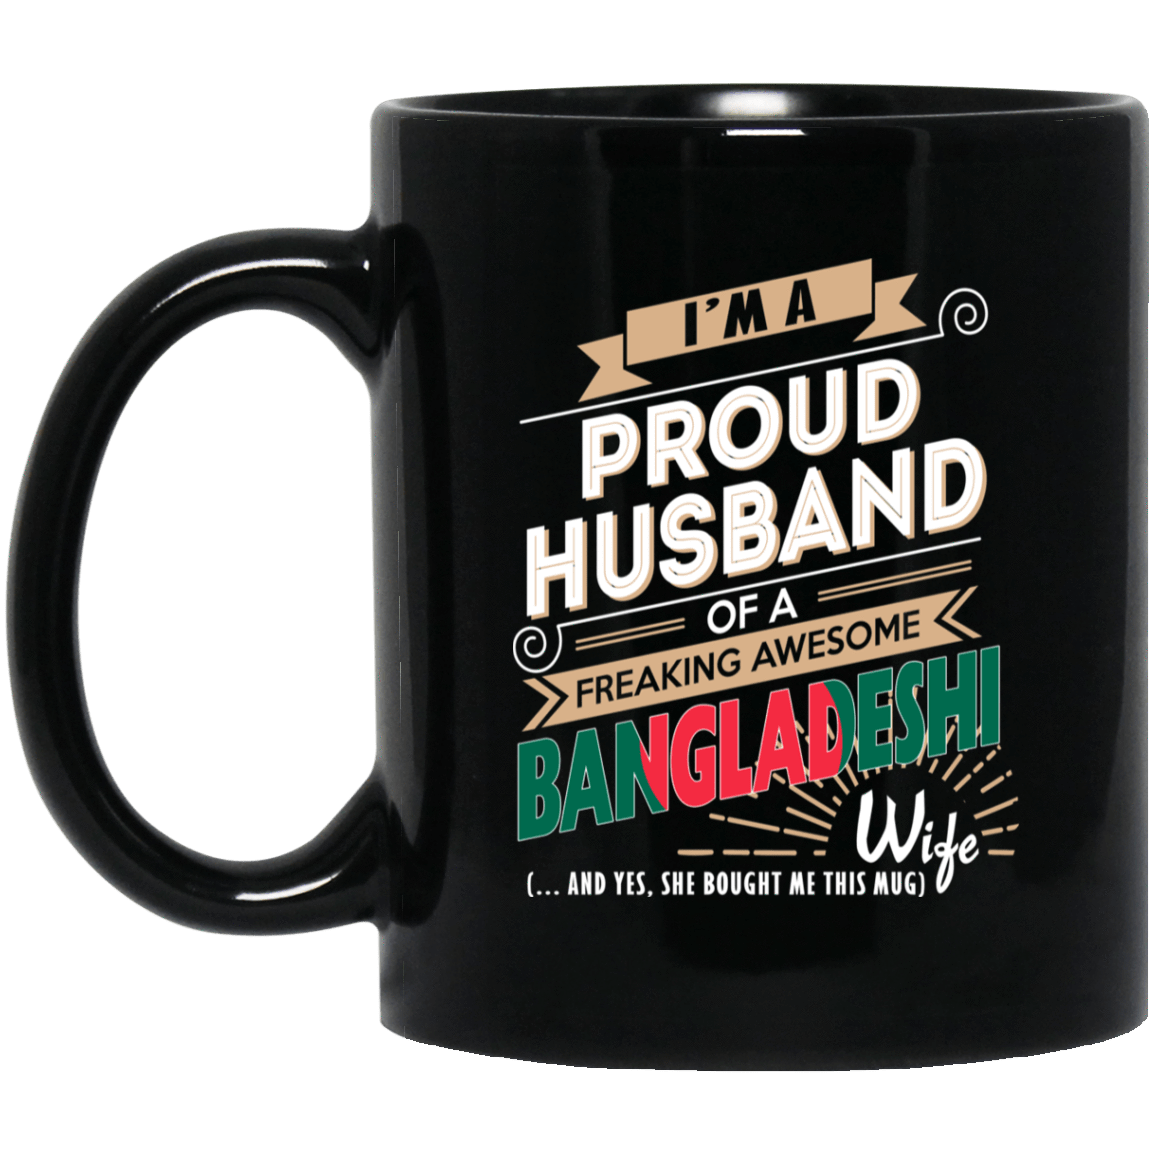 Proud Husband Of A Freaking Awesome Bangladeshi Wife Mug 1065-10181-72136607-49307 - Tee Ript